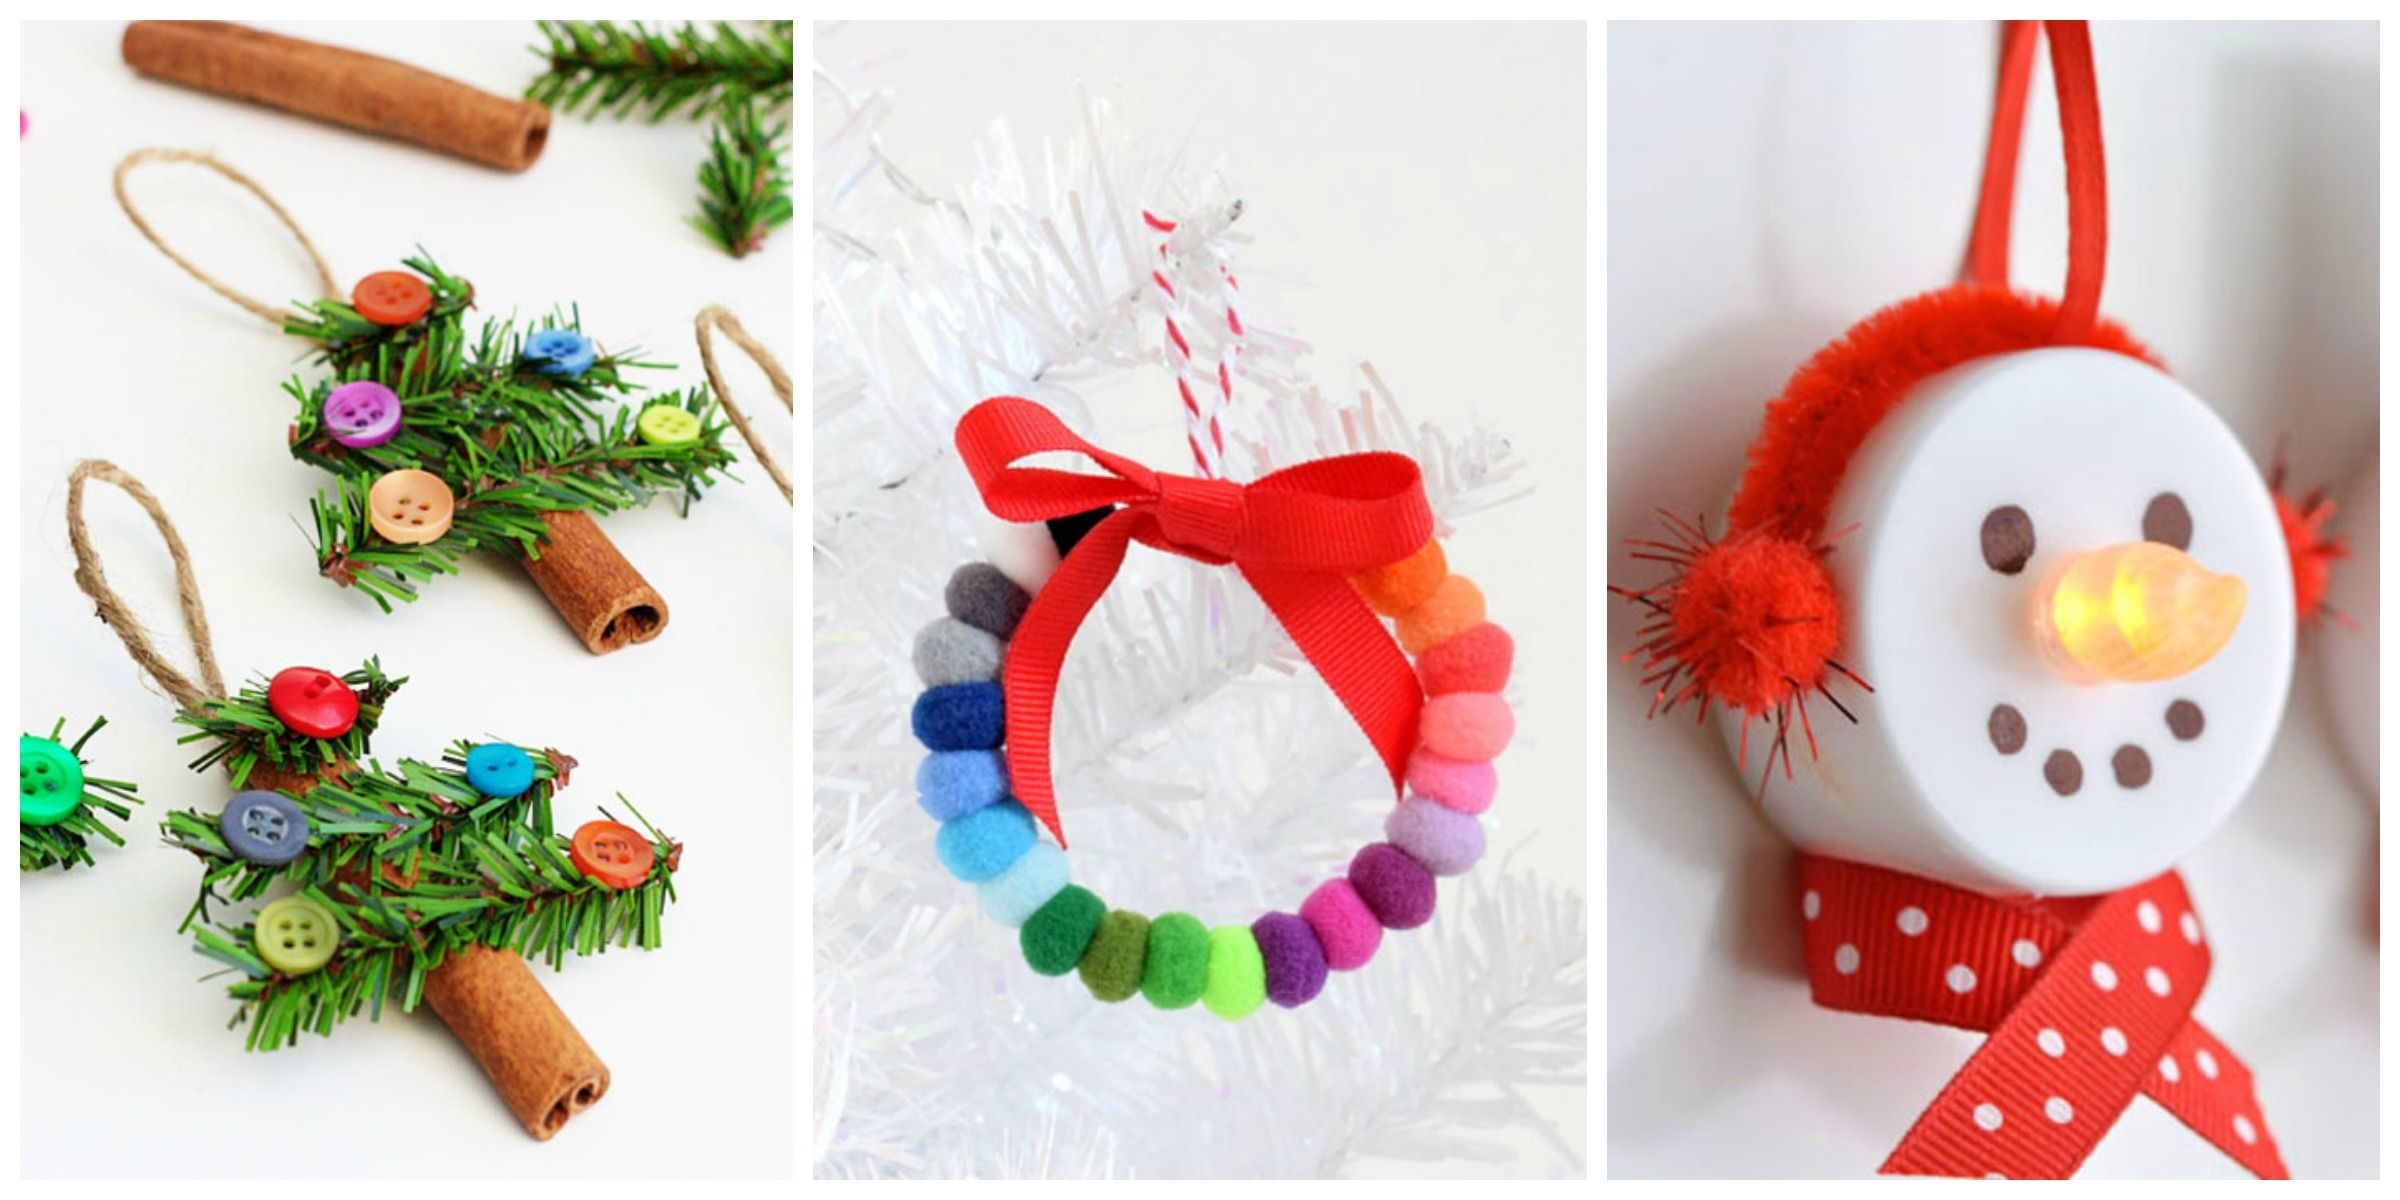 59 Unique DIY Christmas Ornaments - Easy Homemade Ornament Ideas